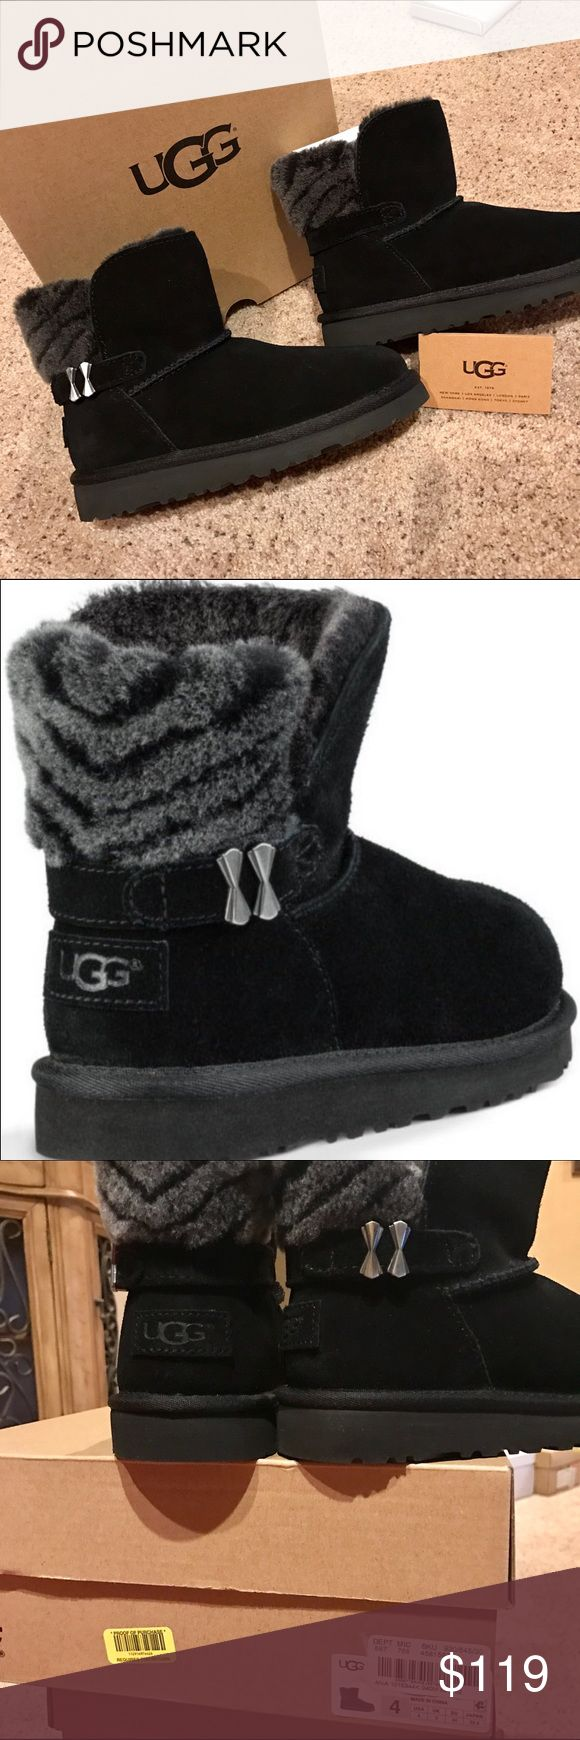 NEW UGG Analia Short Boots 4 Brand new UGG boots in girls size 4.  Comes in original UGG box with authenticity booklet.  Purchased locally can guarantee authenticity.  Analia boot has black suede leather uppers with grey and black striped wool/sheepskin interior.  Super warm.  Double bow buckle on sides. UGG Shoes Boots